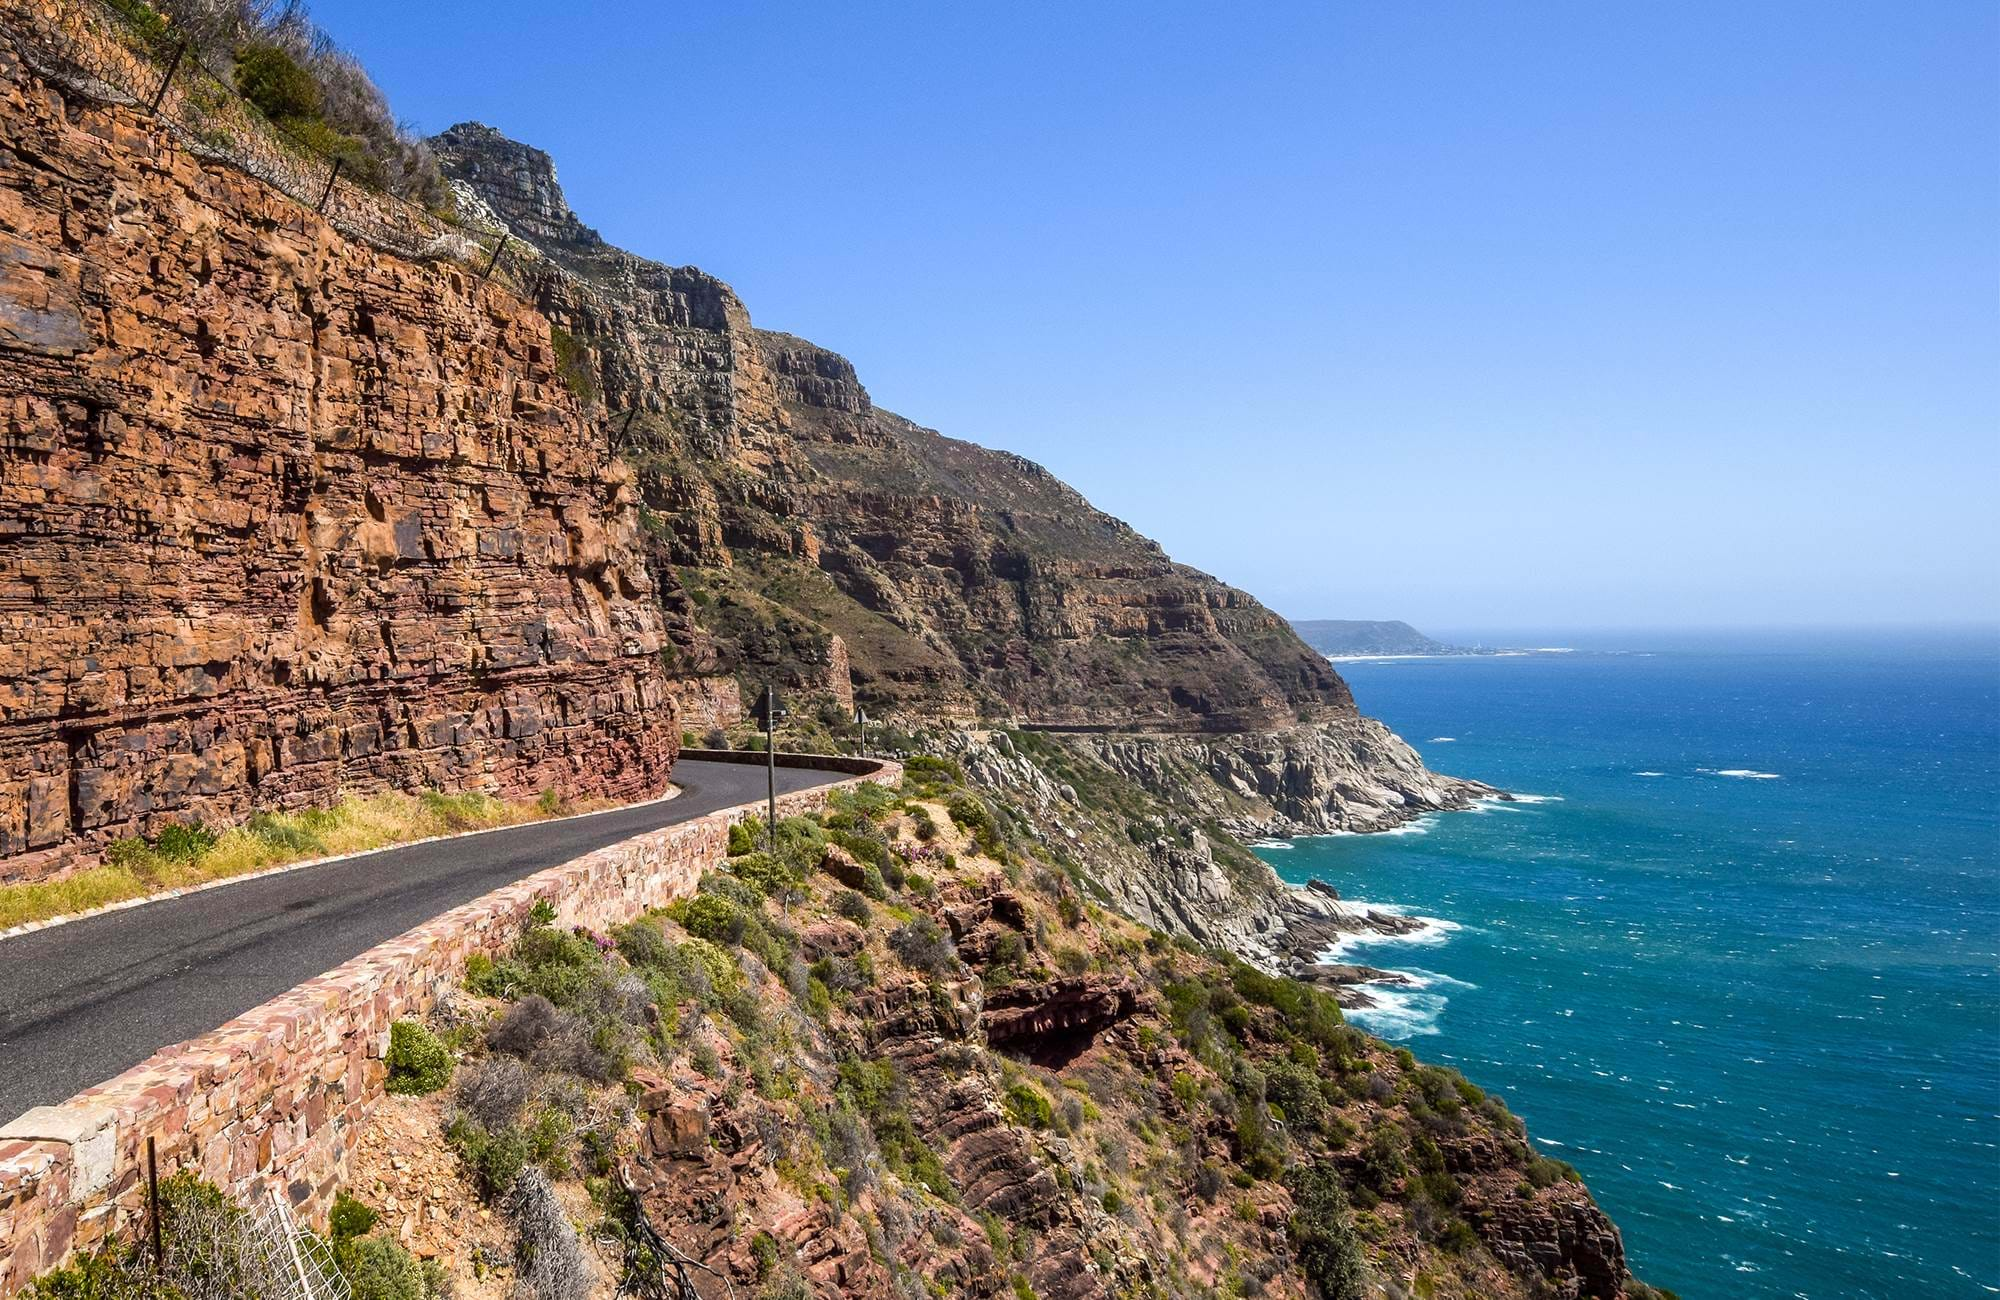 Road trip in South Africa is a great way of exploring the country